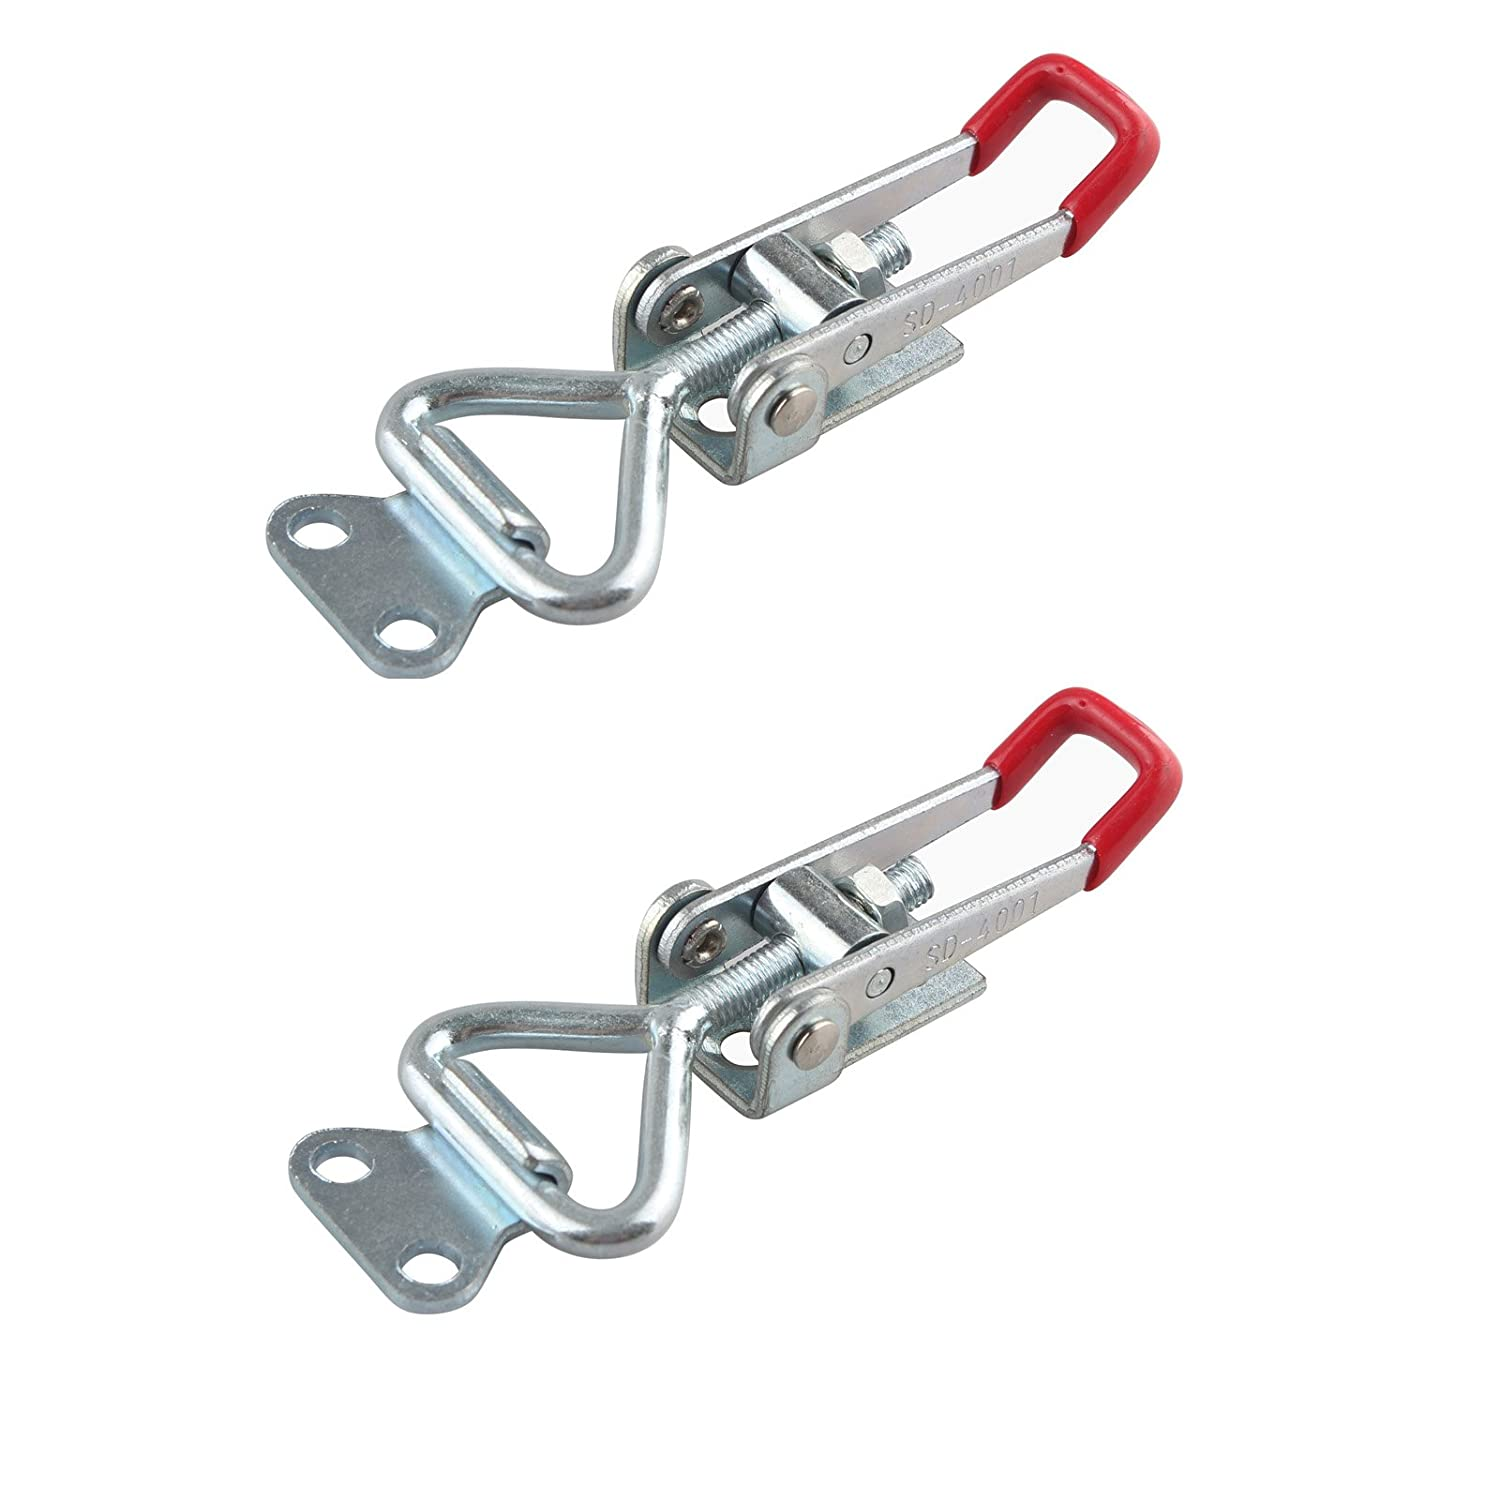 HALJIA 2PCS 4001 100Kg 220Lbs Holding Capacity Latch Door Button Toggle Clamp